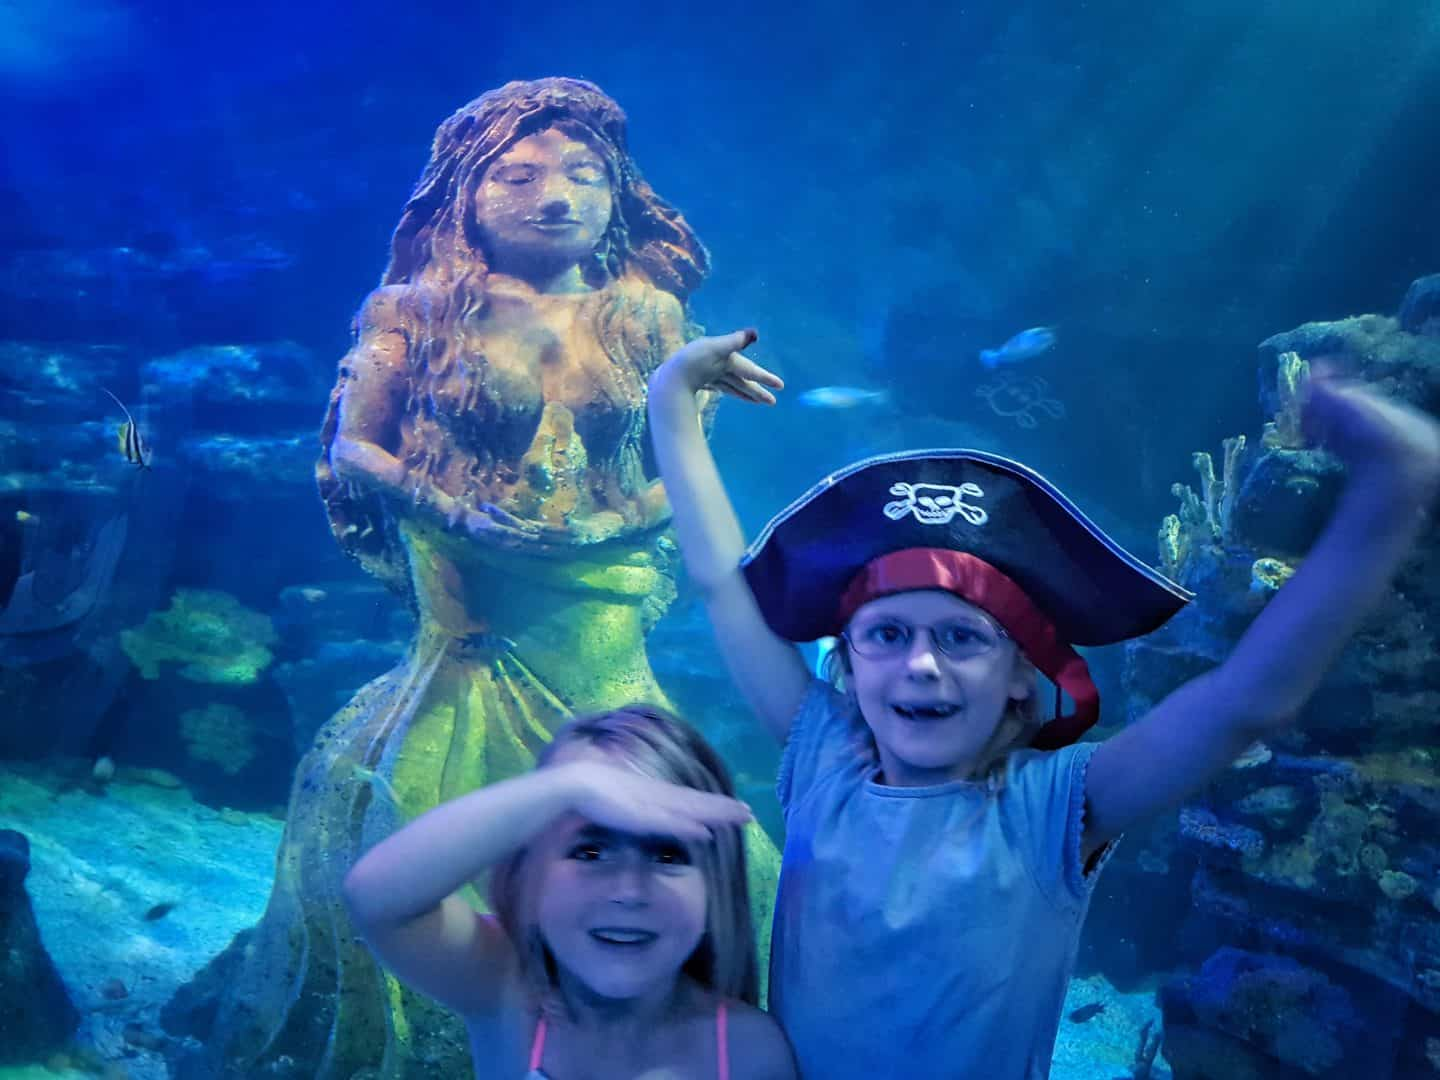 Pirates and Mermaids at the National Sea Life Centre Birmingham